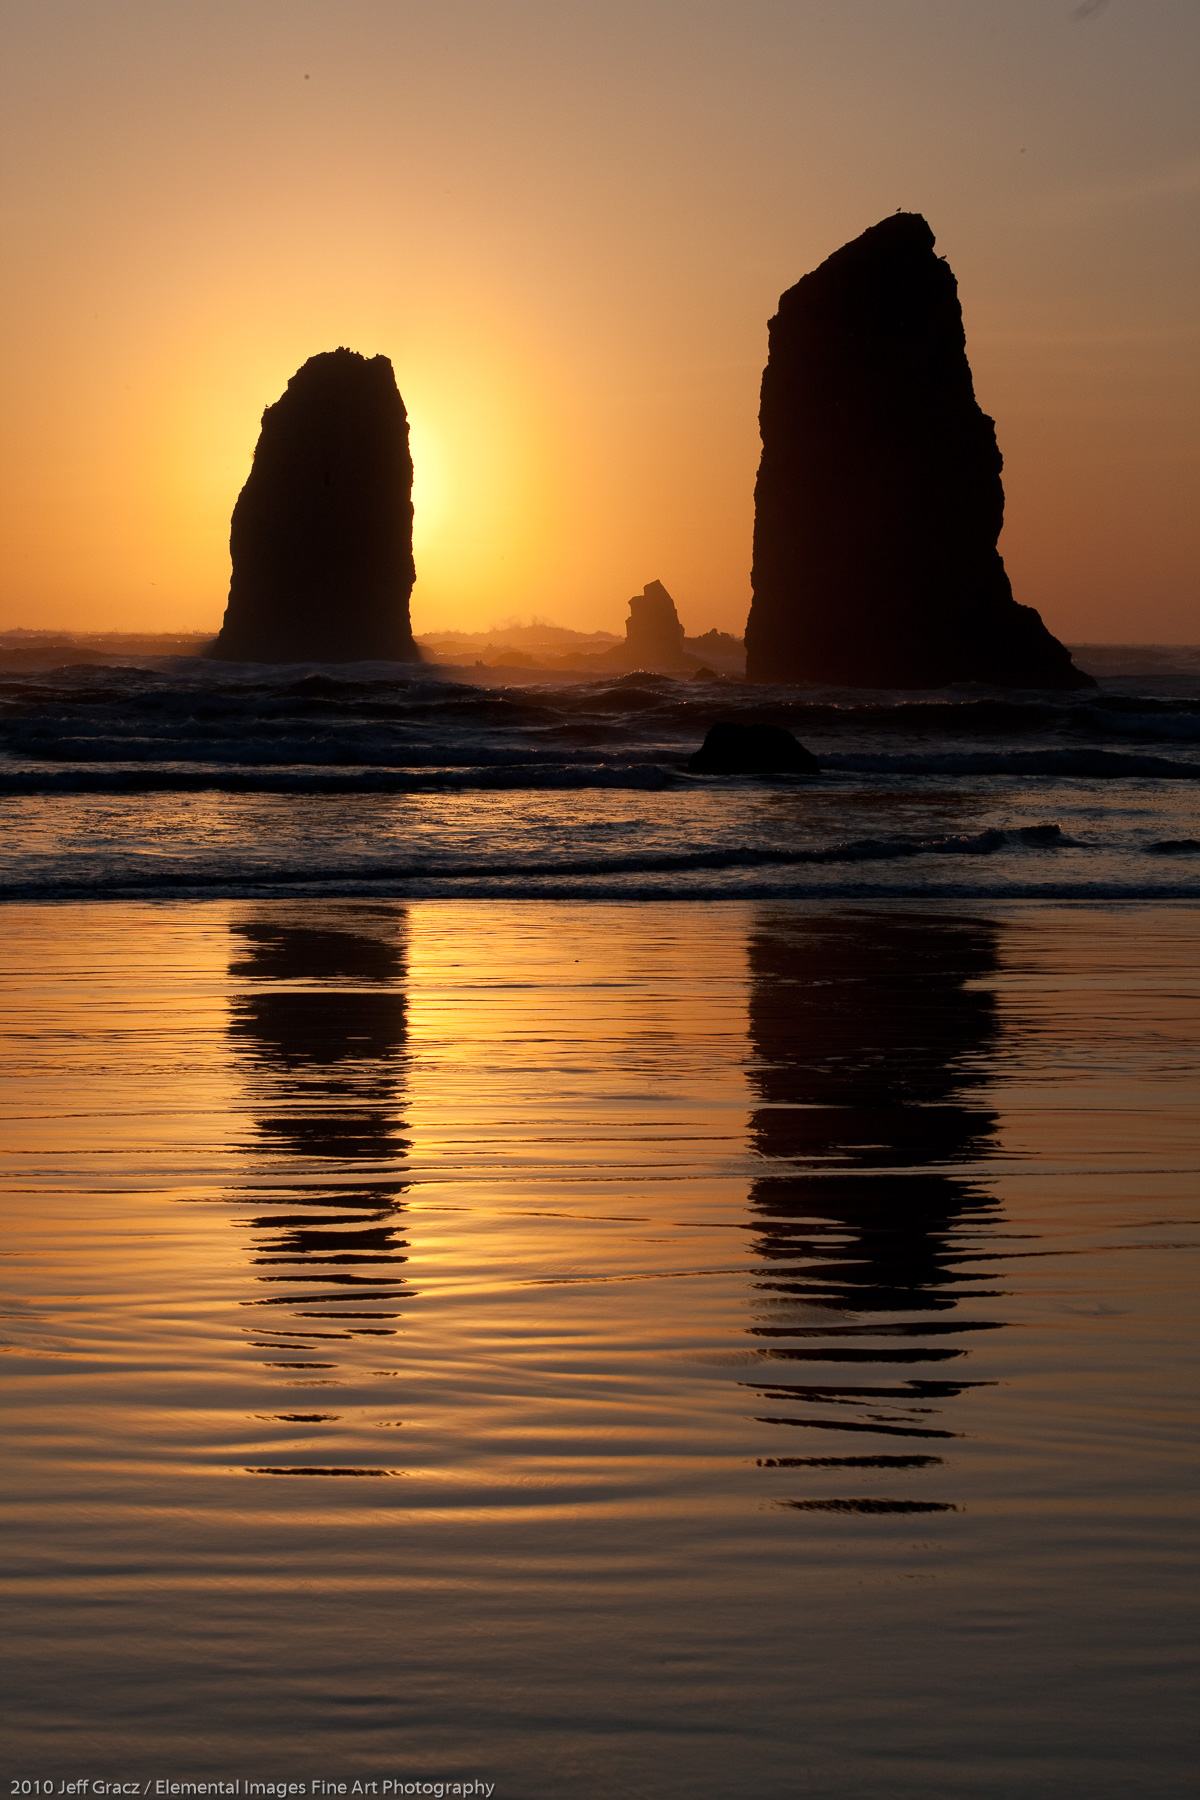 The Needles at sunset | Cannon Beach | OR |  - © 2010 Jeff Gracz / Elemental Images Fine Art Photography - All Rights Reserved Worldwide